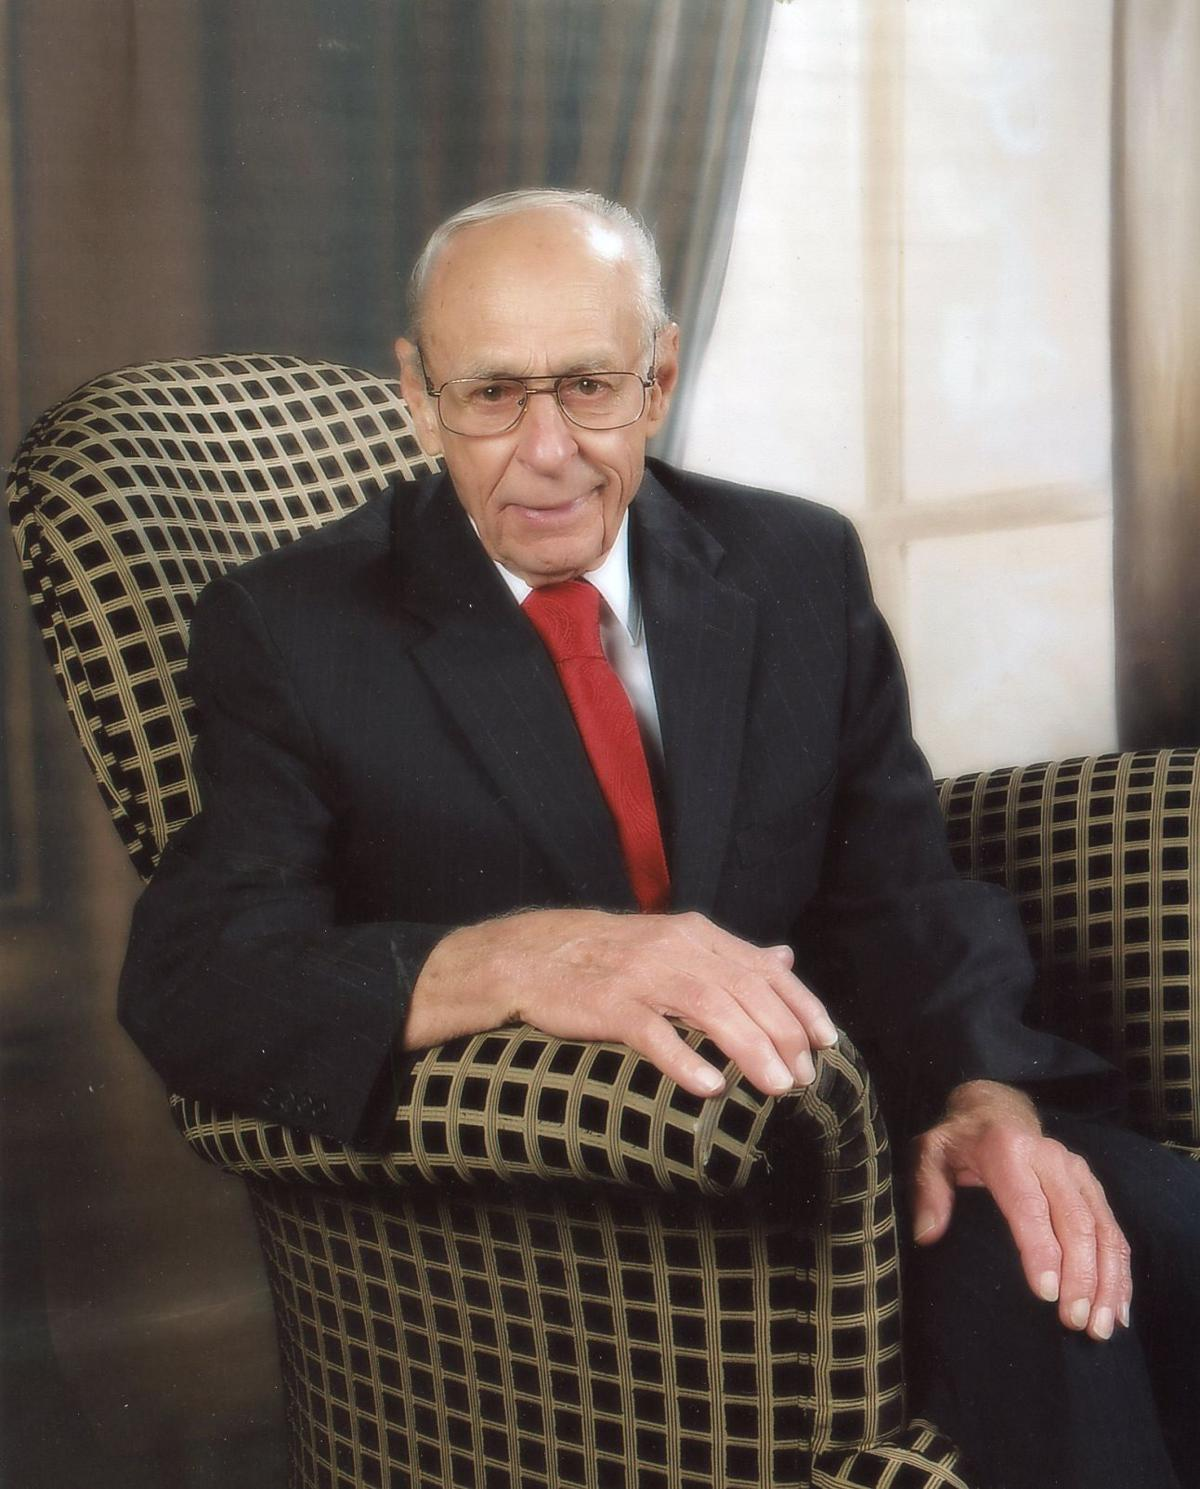 Robert andre 90 obituaries for Andre robert